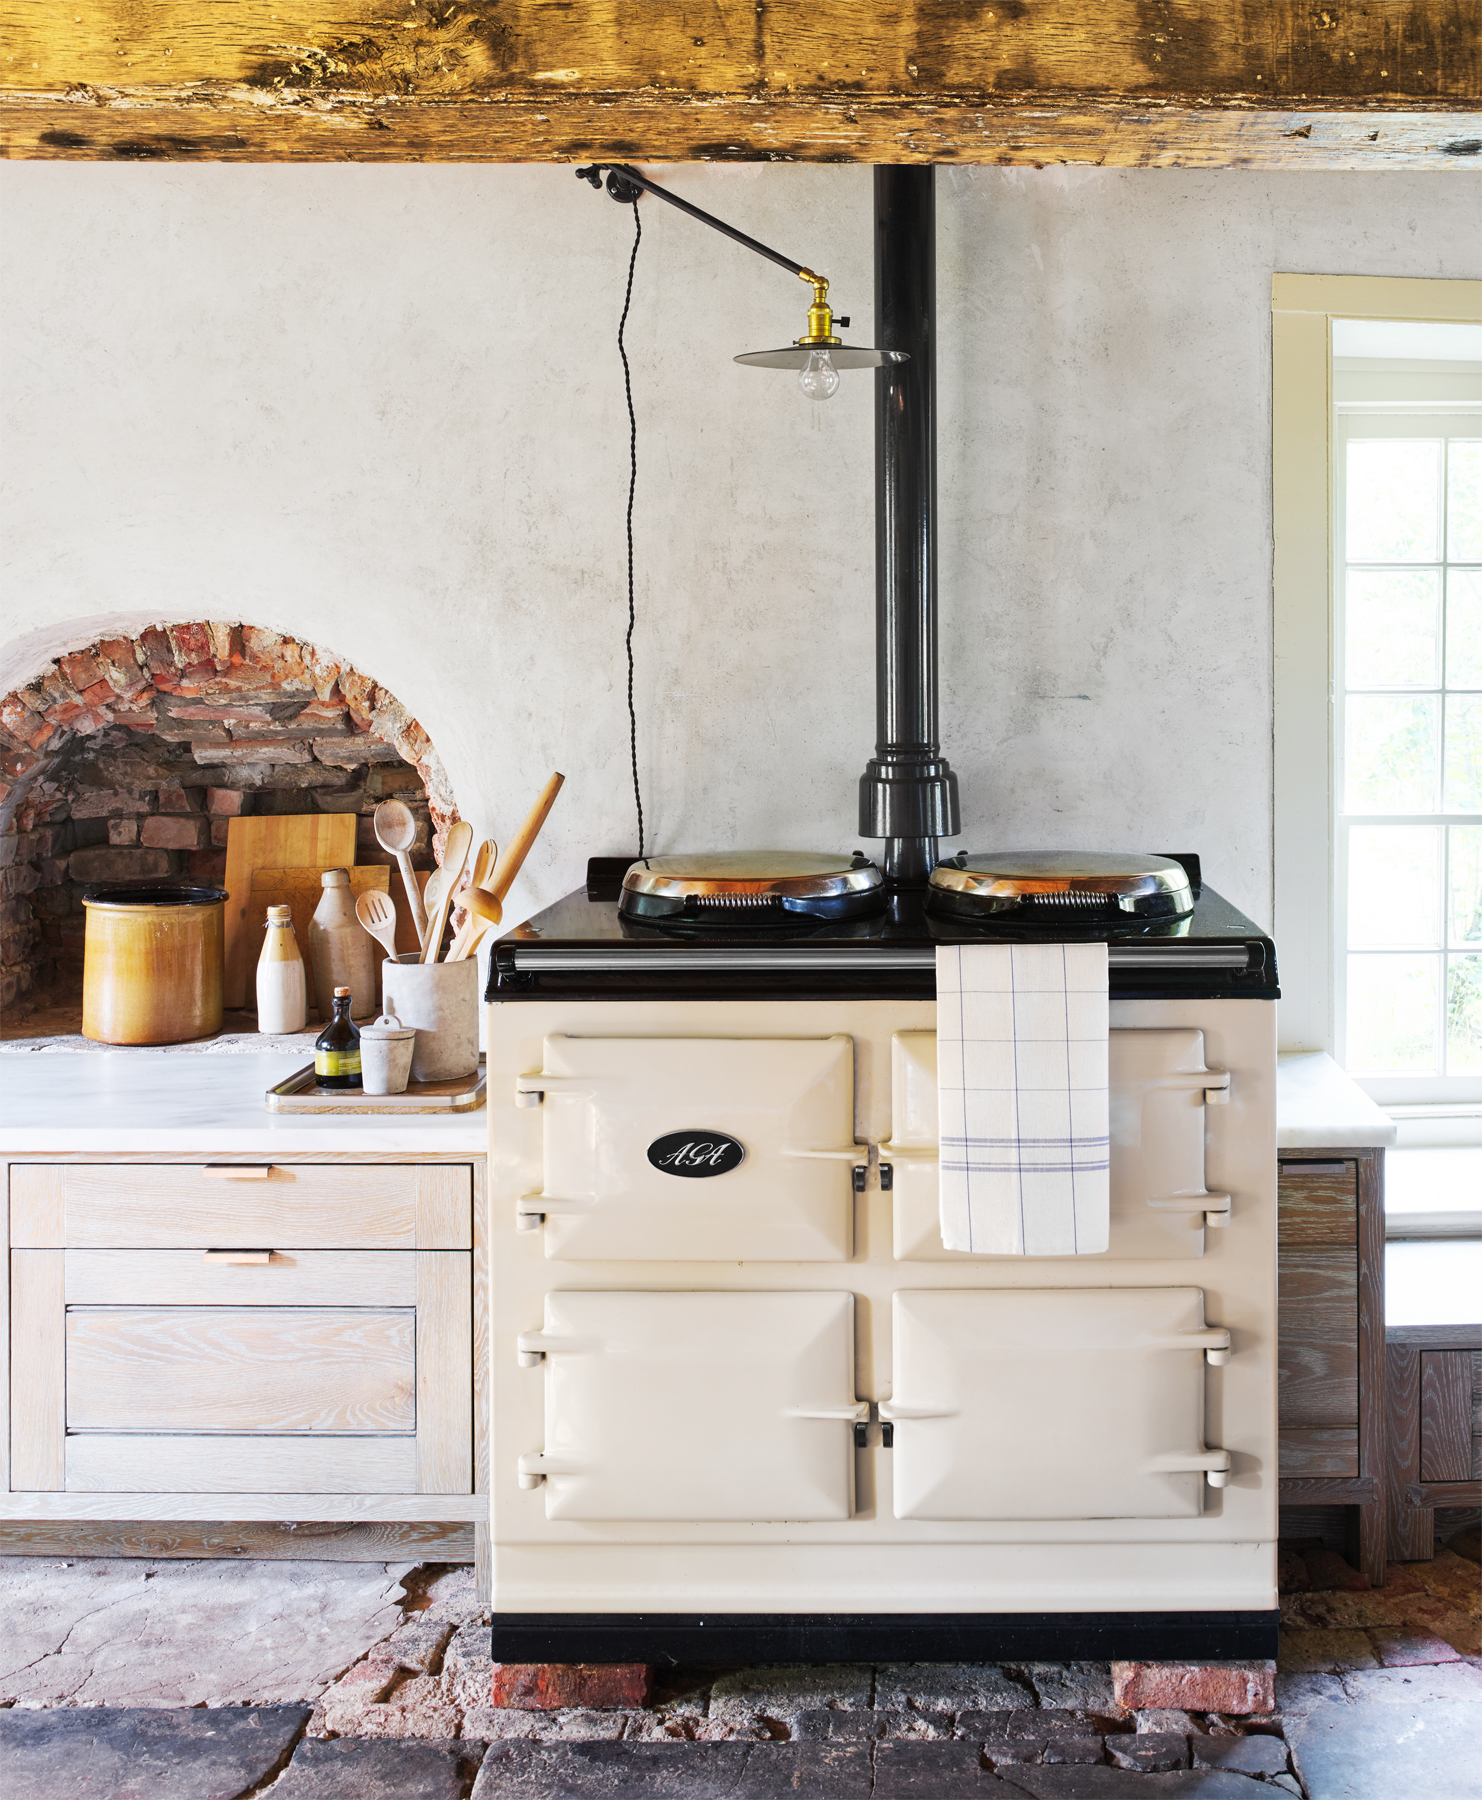 Reclaimed Kitchen Decorating Ideas